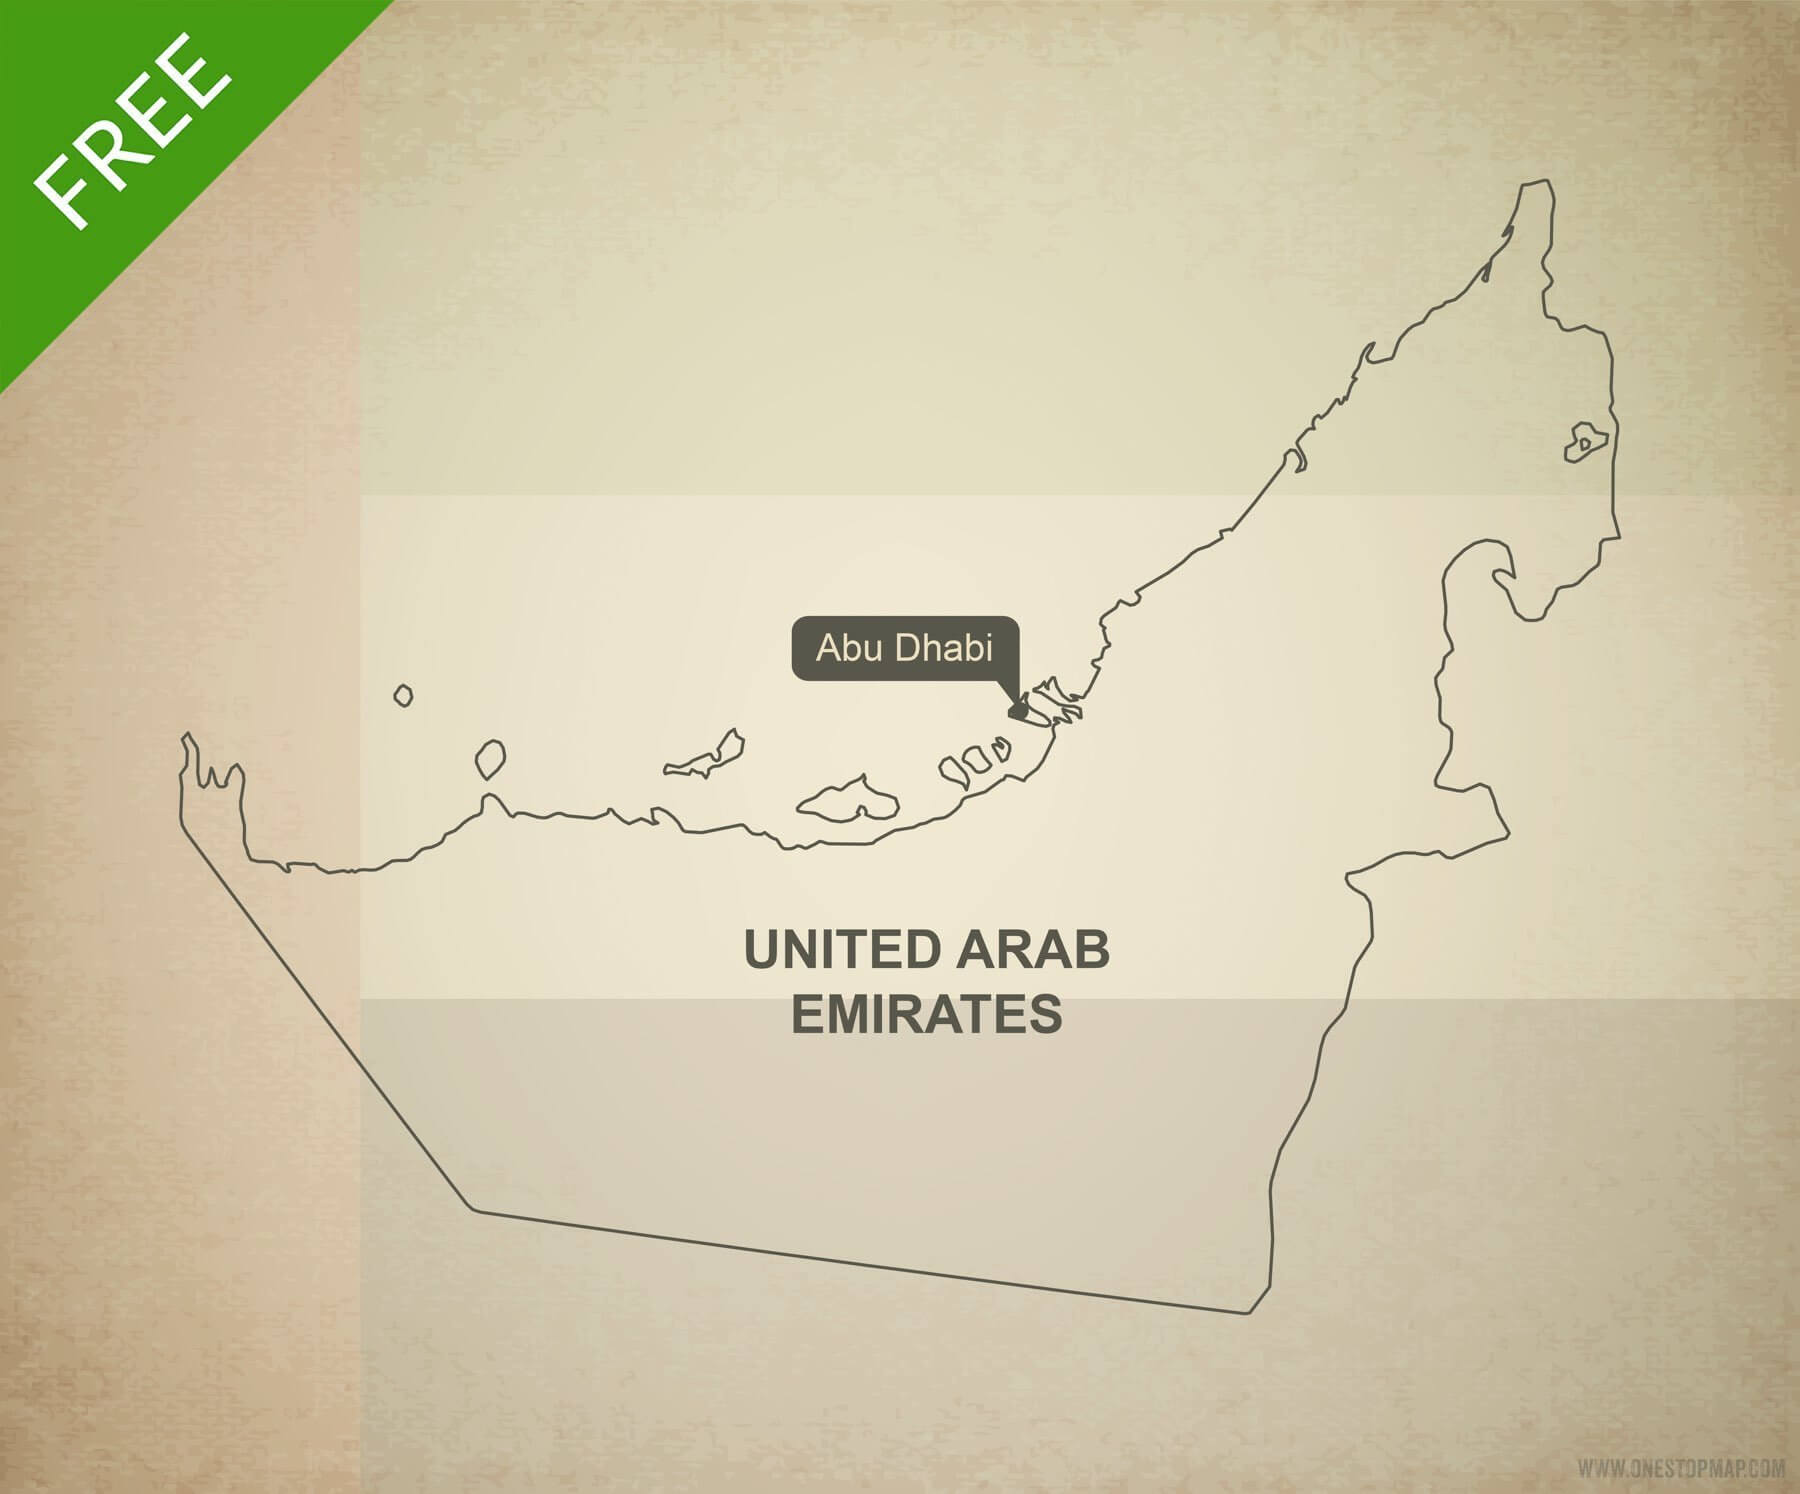 Free Vector Map of United Arab Emirates | One Stop Map on map of algeria, middle east, ras al-khaimah, burj al-arab, united states of america, map of bhutan, map of sudan, map of malaysia, arabian peninsula, persian gulf, map of iran, map of isle of man, map of ethiopia, map of dubai and surrounding countries, map of netherlands, abu dhabi, burj khalifa, map of montenegro, saudi arabia, map of singapore, map of pakistan, map of hungary, map of oman, map of venezuela, map of bosnia, map of bahrain, map of israel, map of armenia, map of denmark,